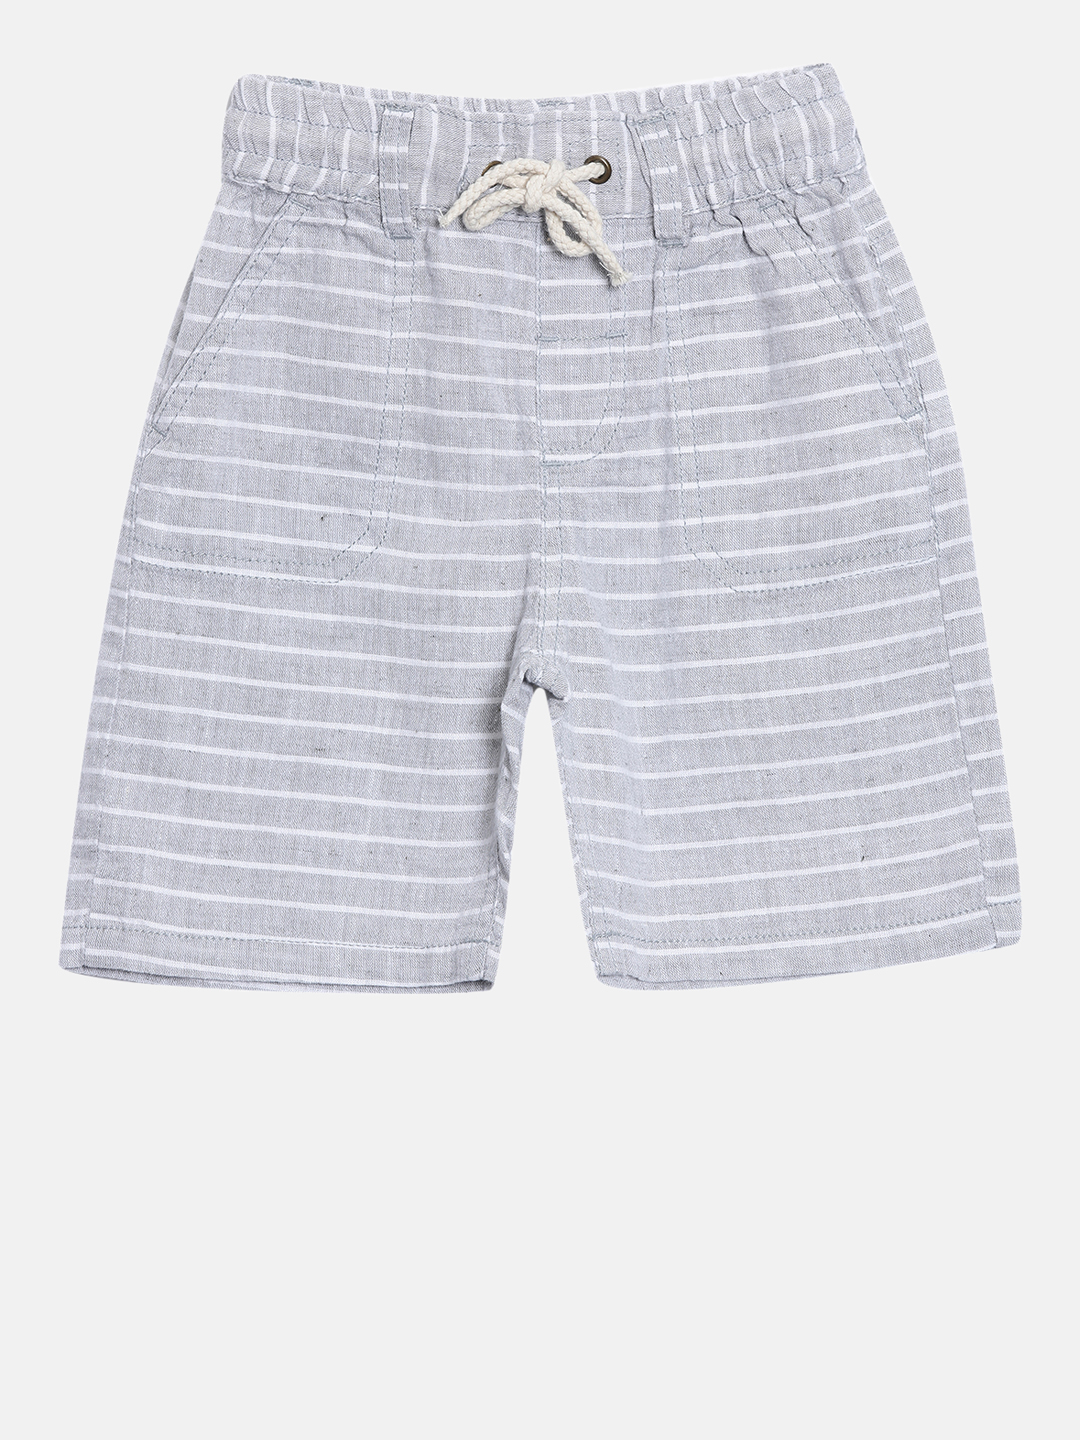 Nuberry   Nuberry Boys cotton shorts